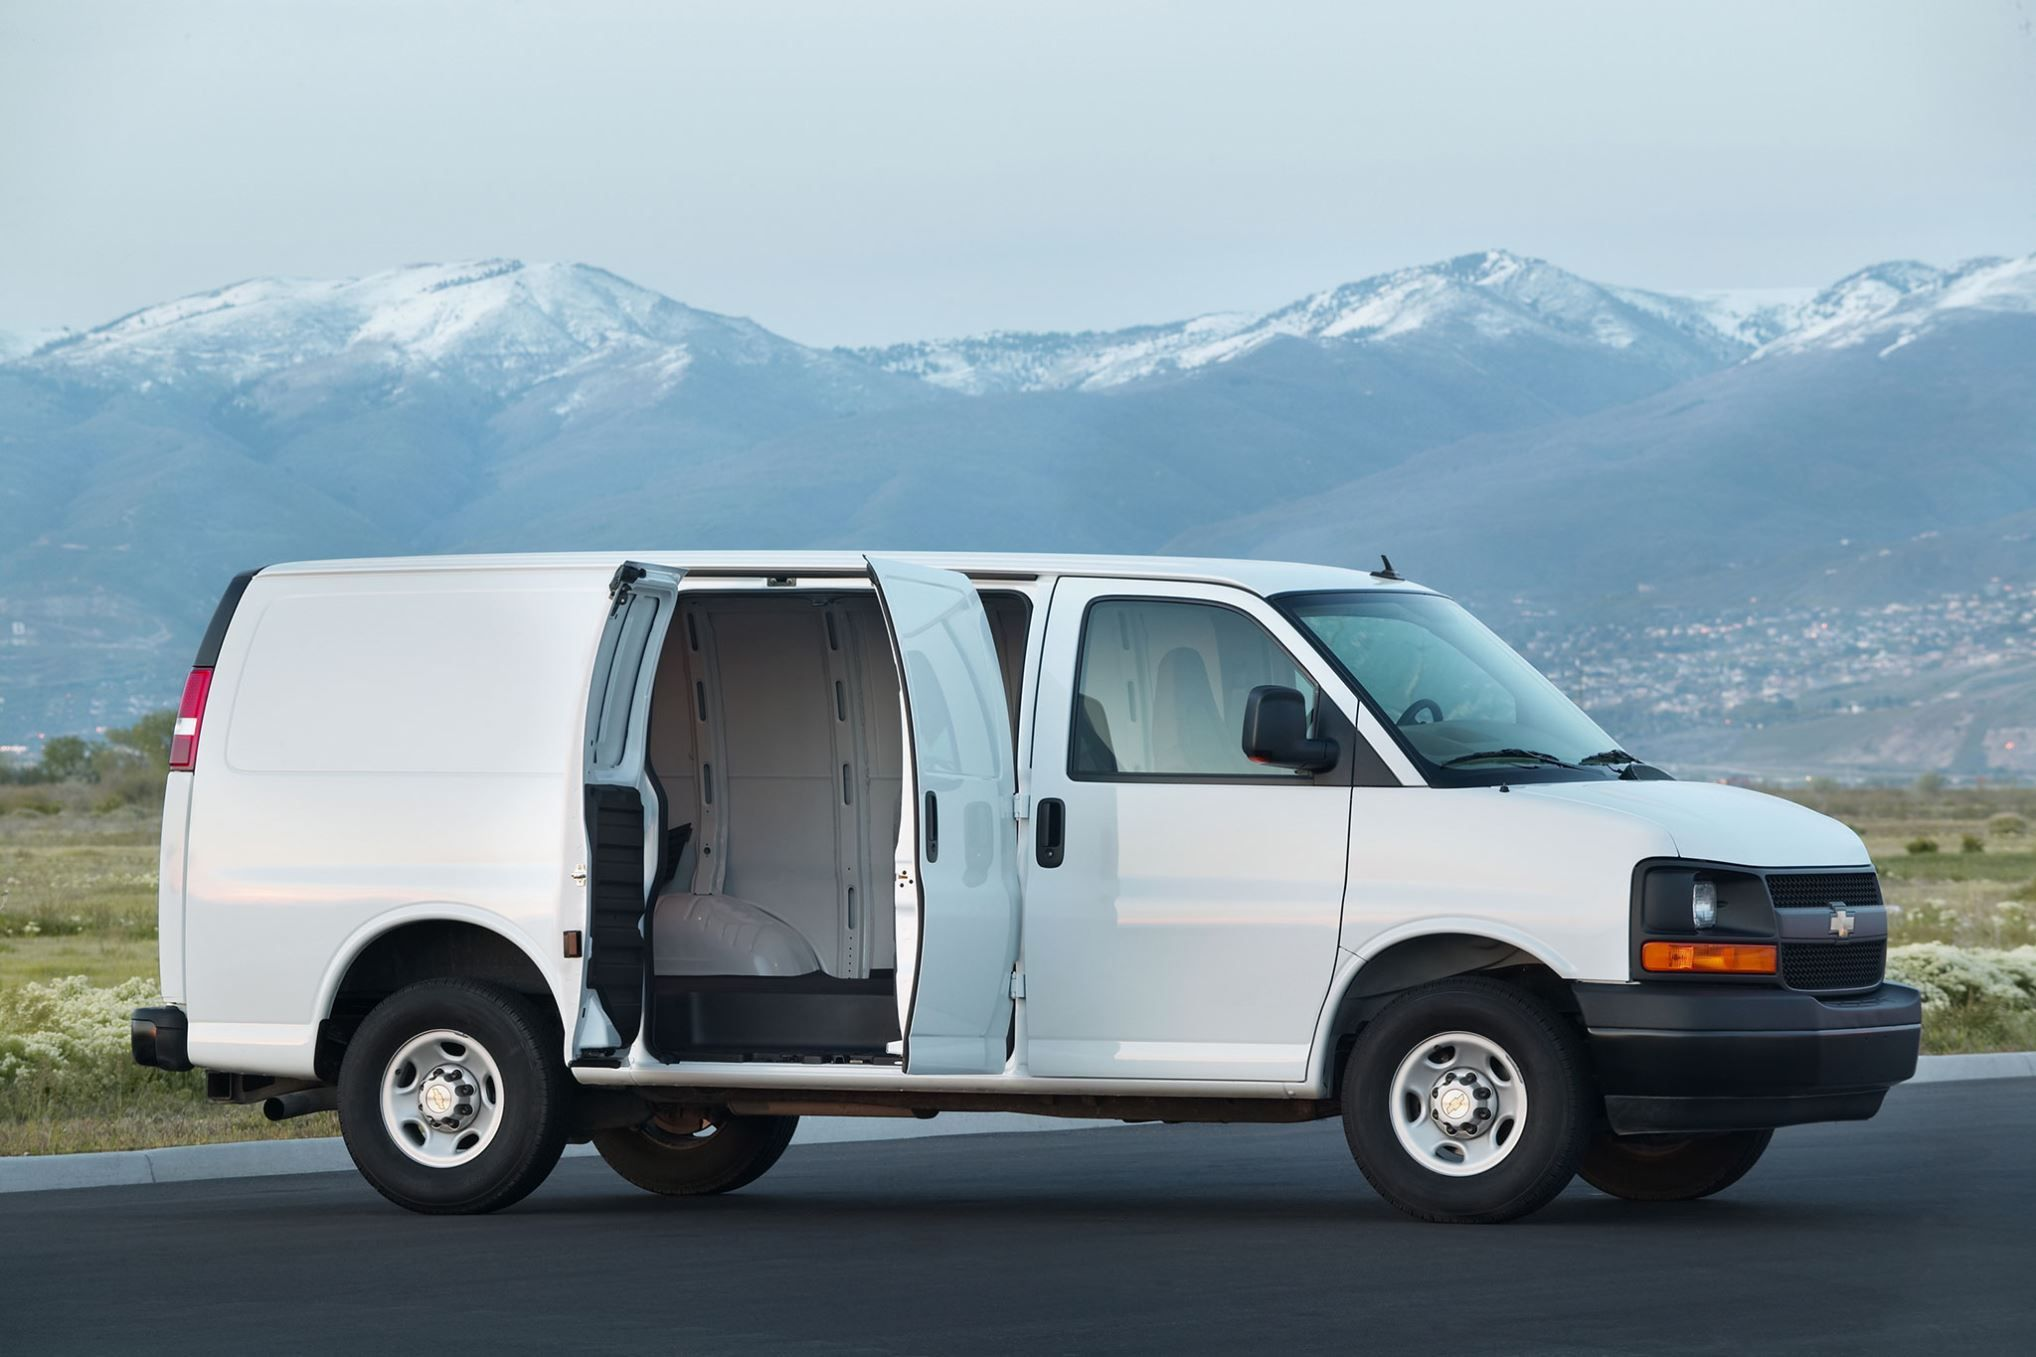 2015 2016 Trucks Suvs And Vans The Ultimate Buyer S Guide